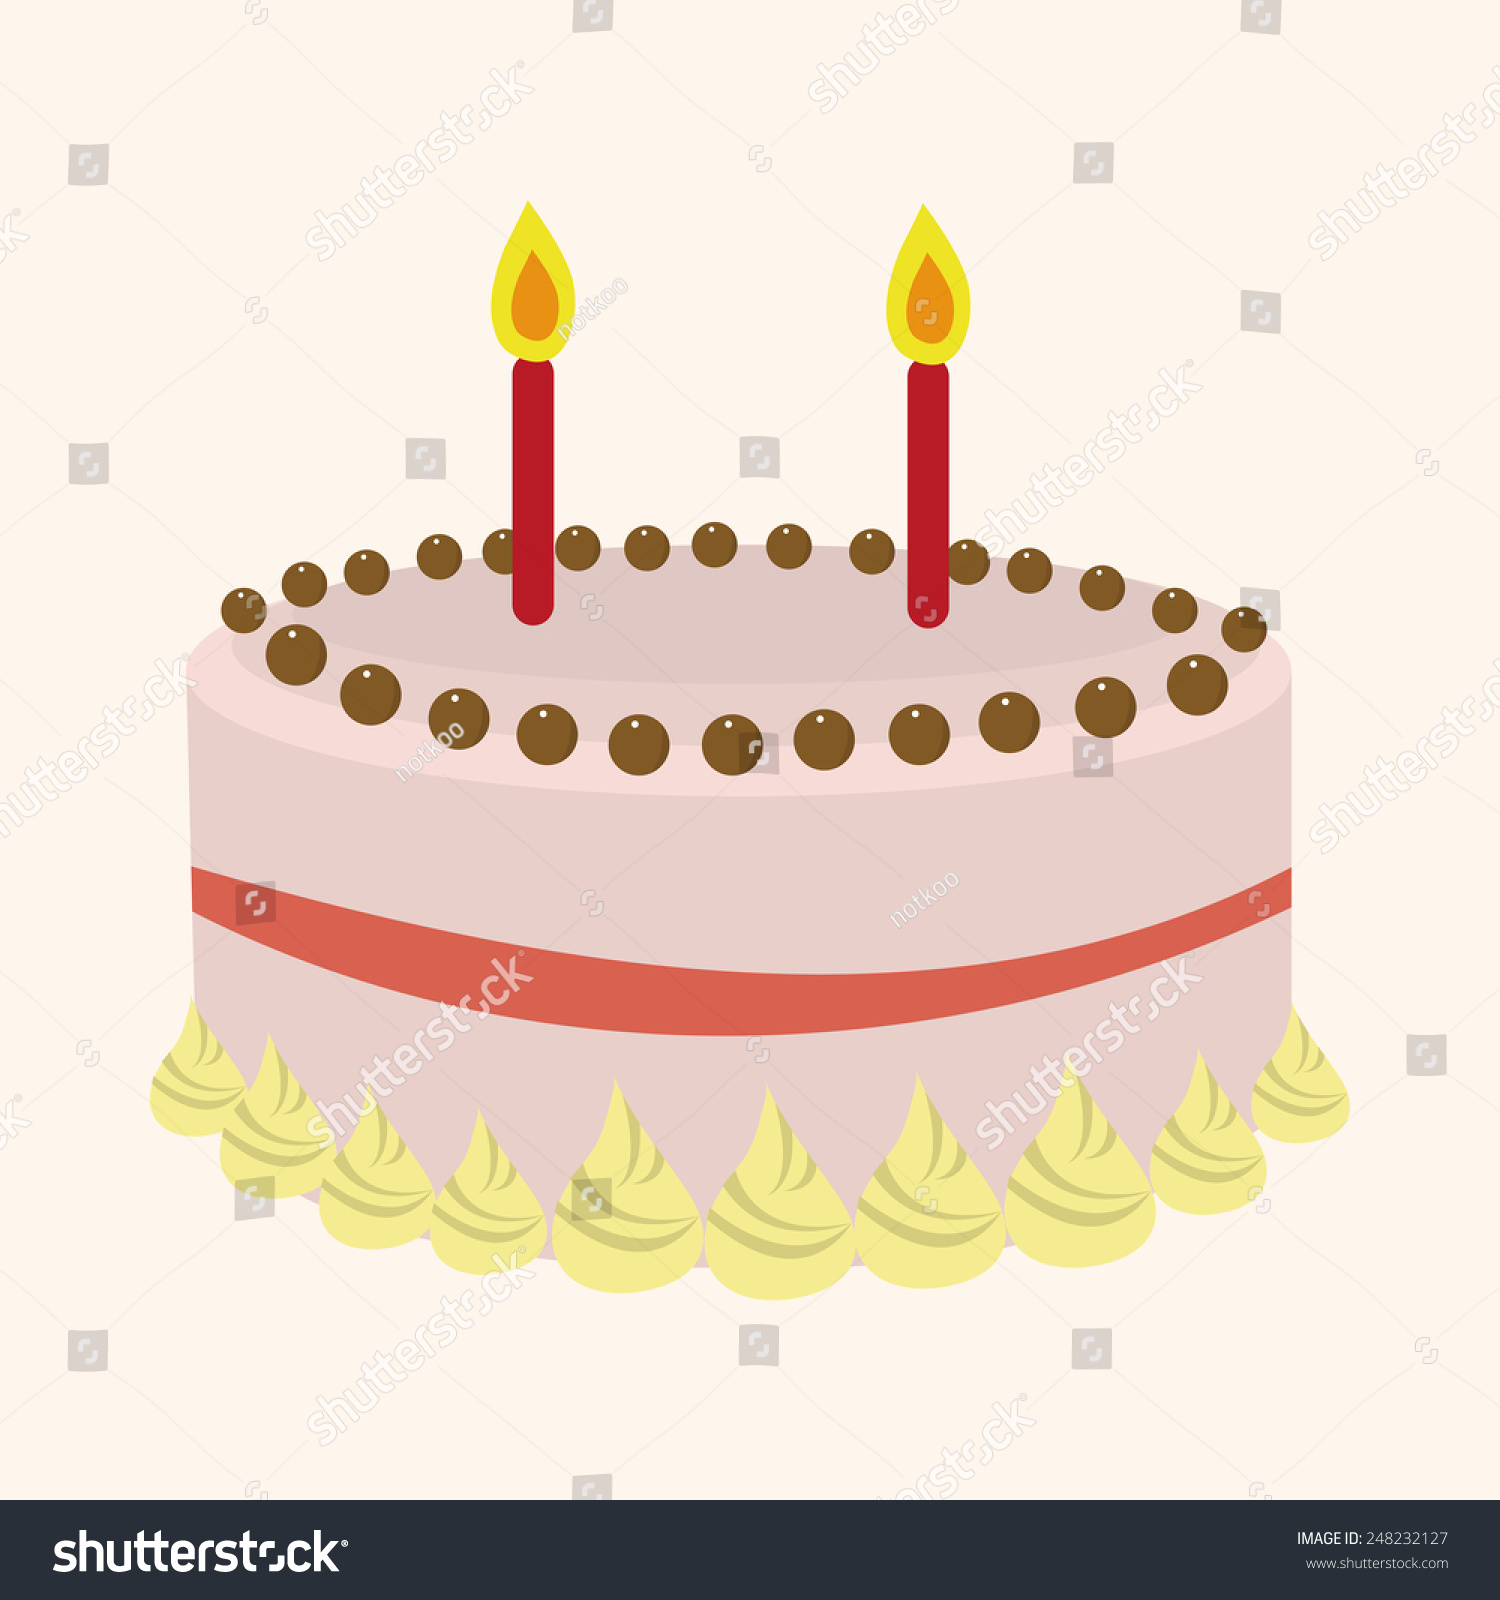 Cake Decorating Stock Images : Decorating Cake Elements Vector,Eps - 248232127 : Shutterstock